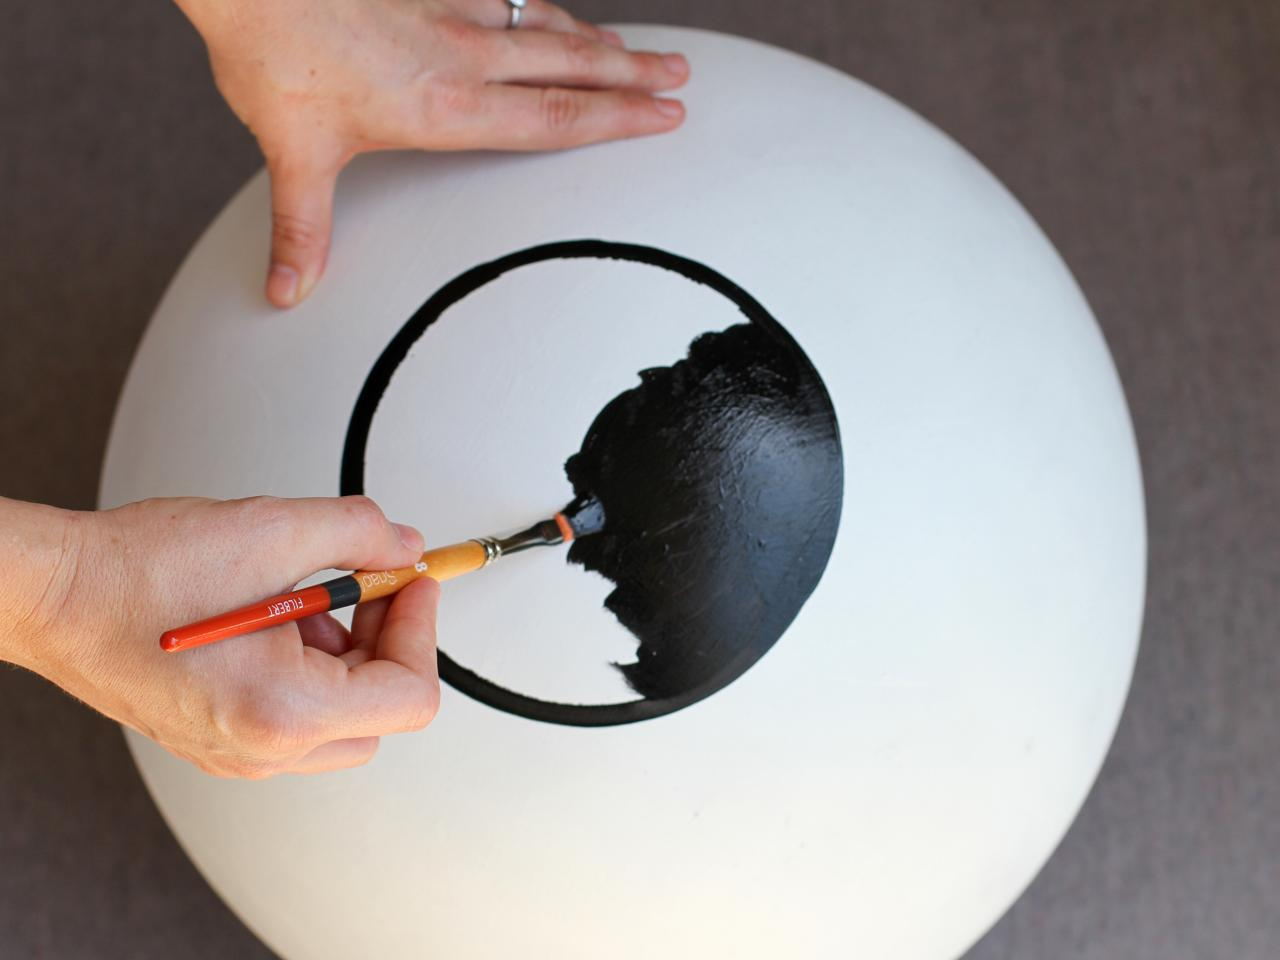 How to Make Giant Bloodshot-Eye Halloween Decor how-tos DIY